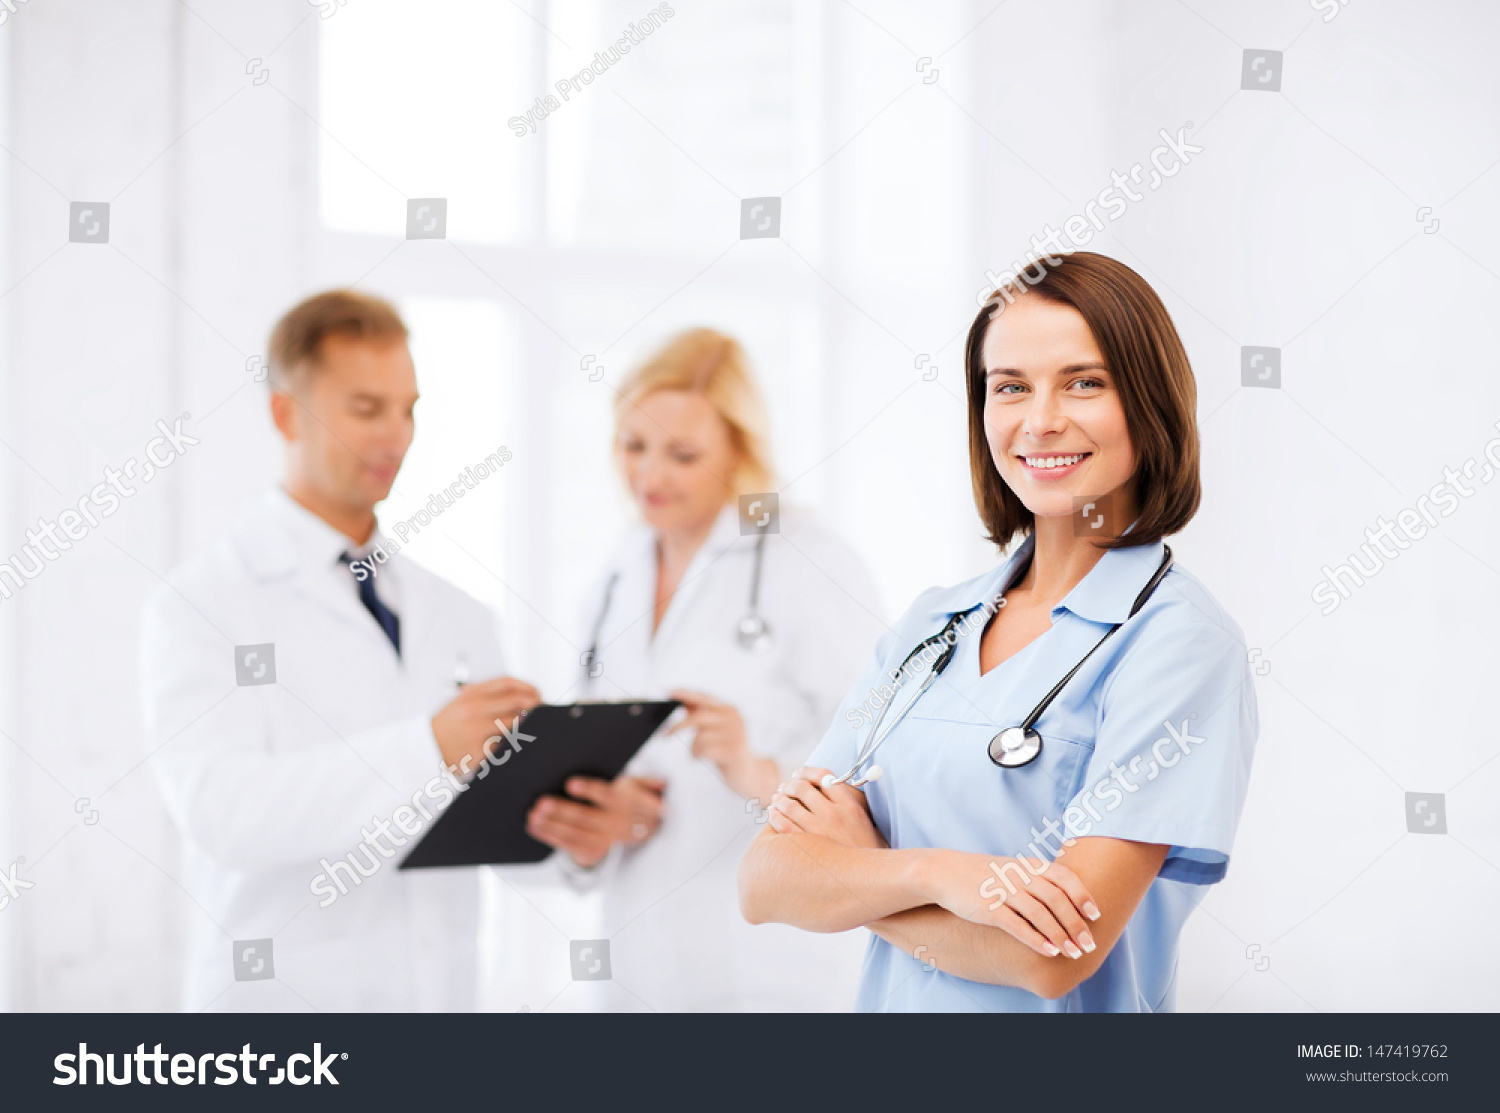 healthcare and medical concept young female doctor with stethoscope